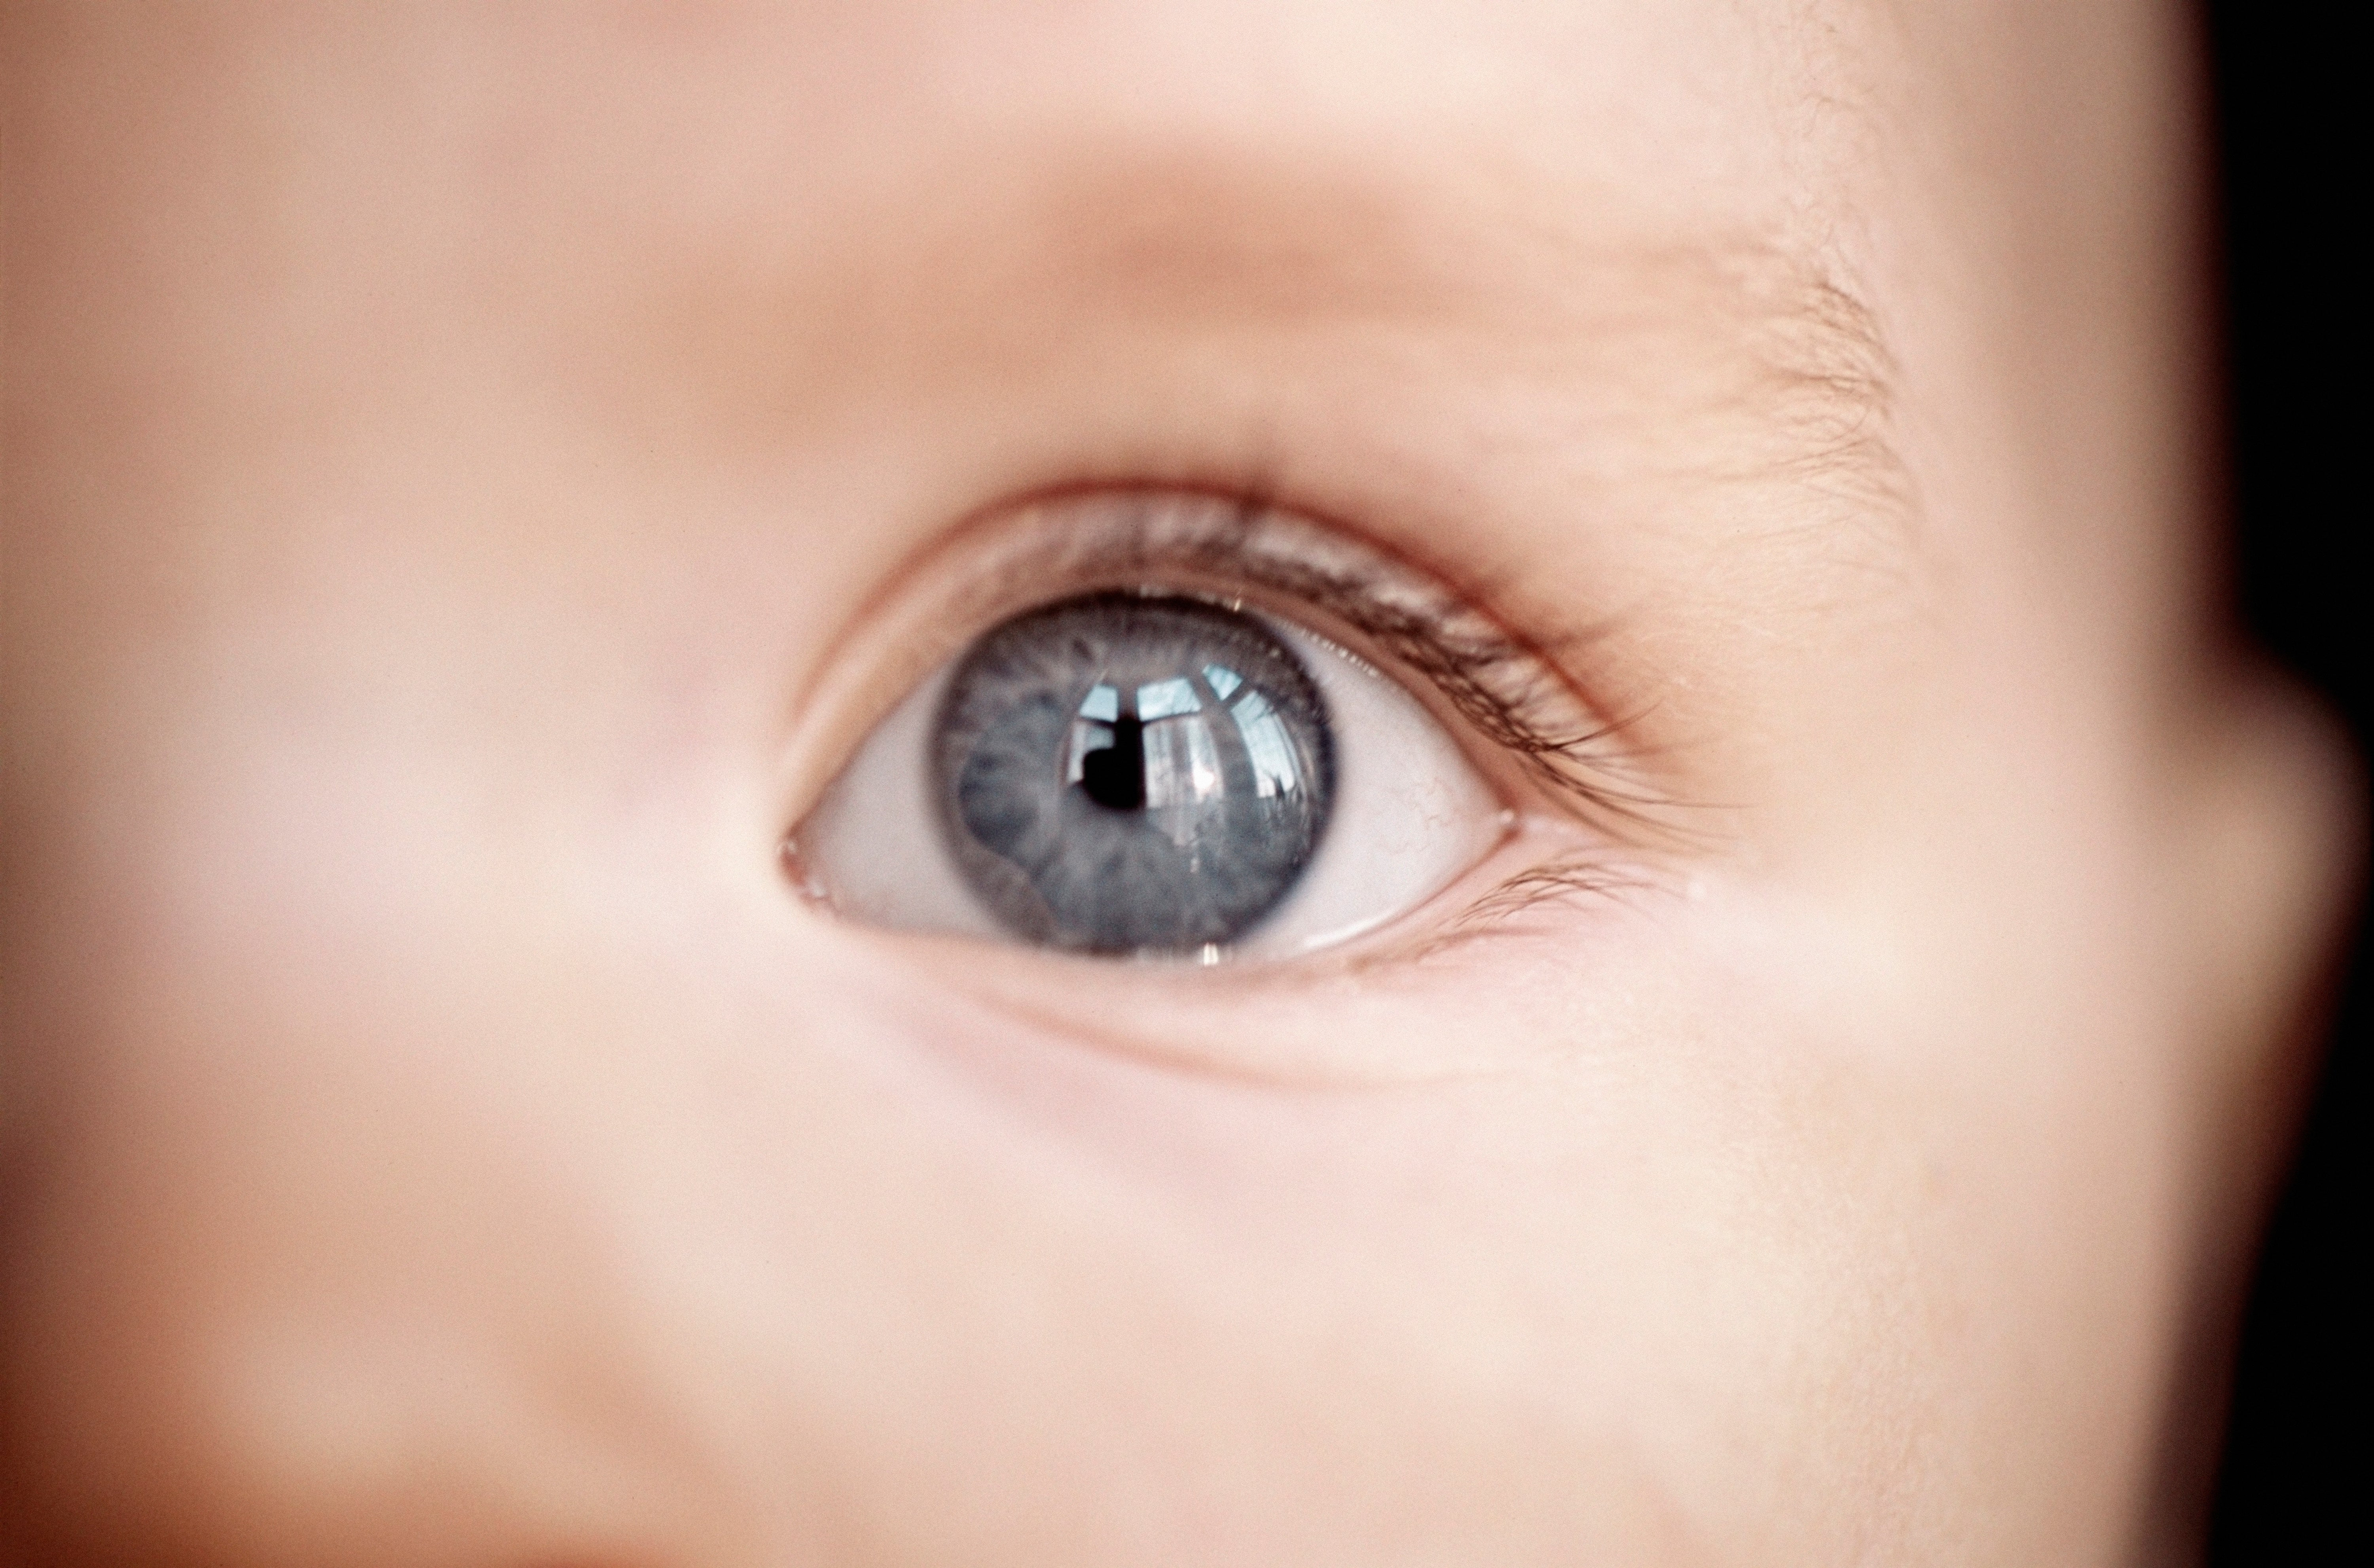 Born Ready: Babies Are Prewired to Perceive the World